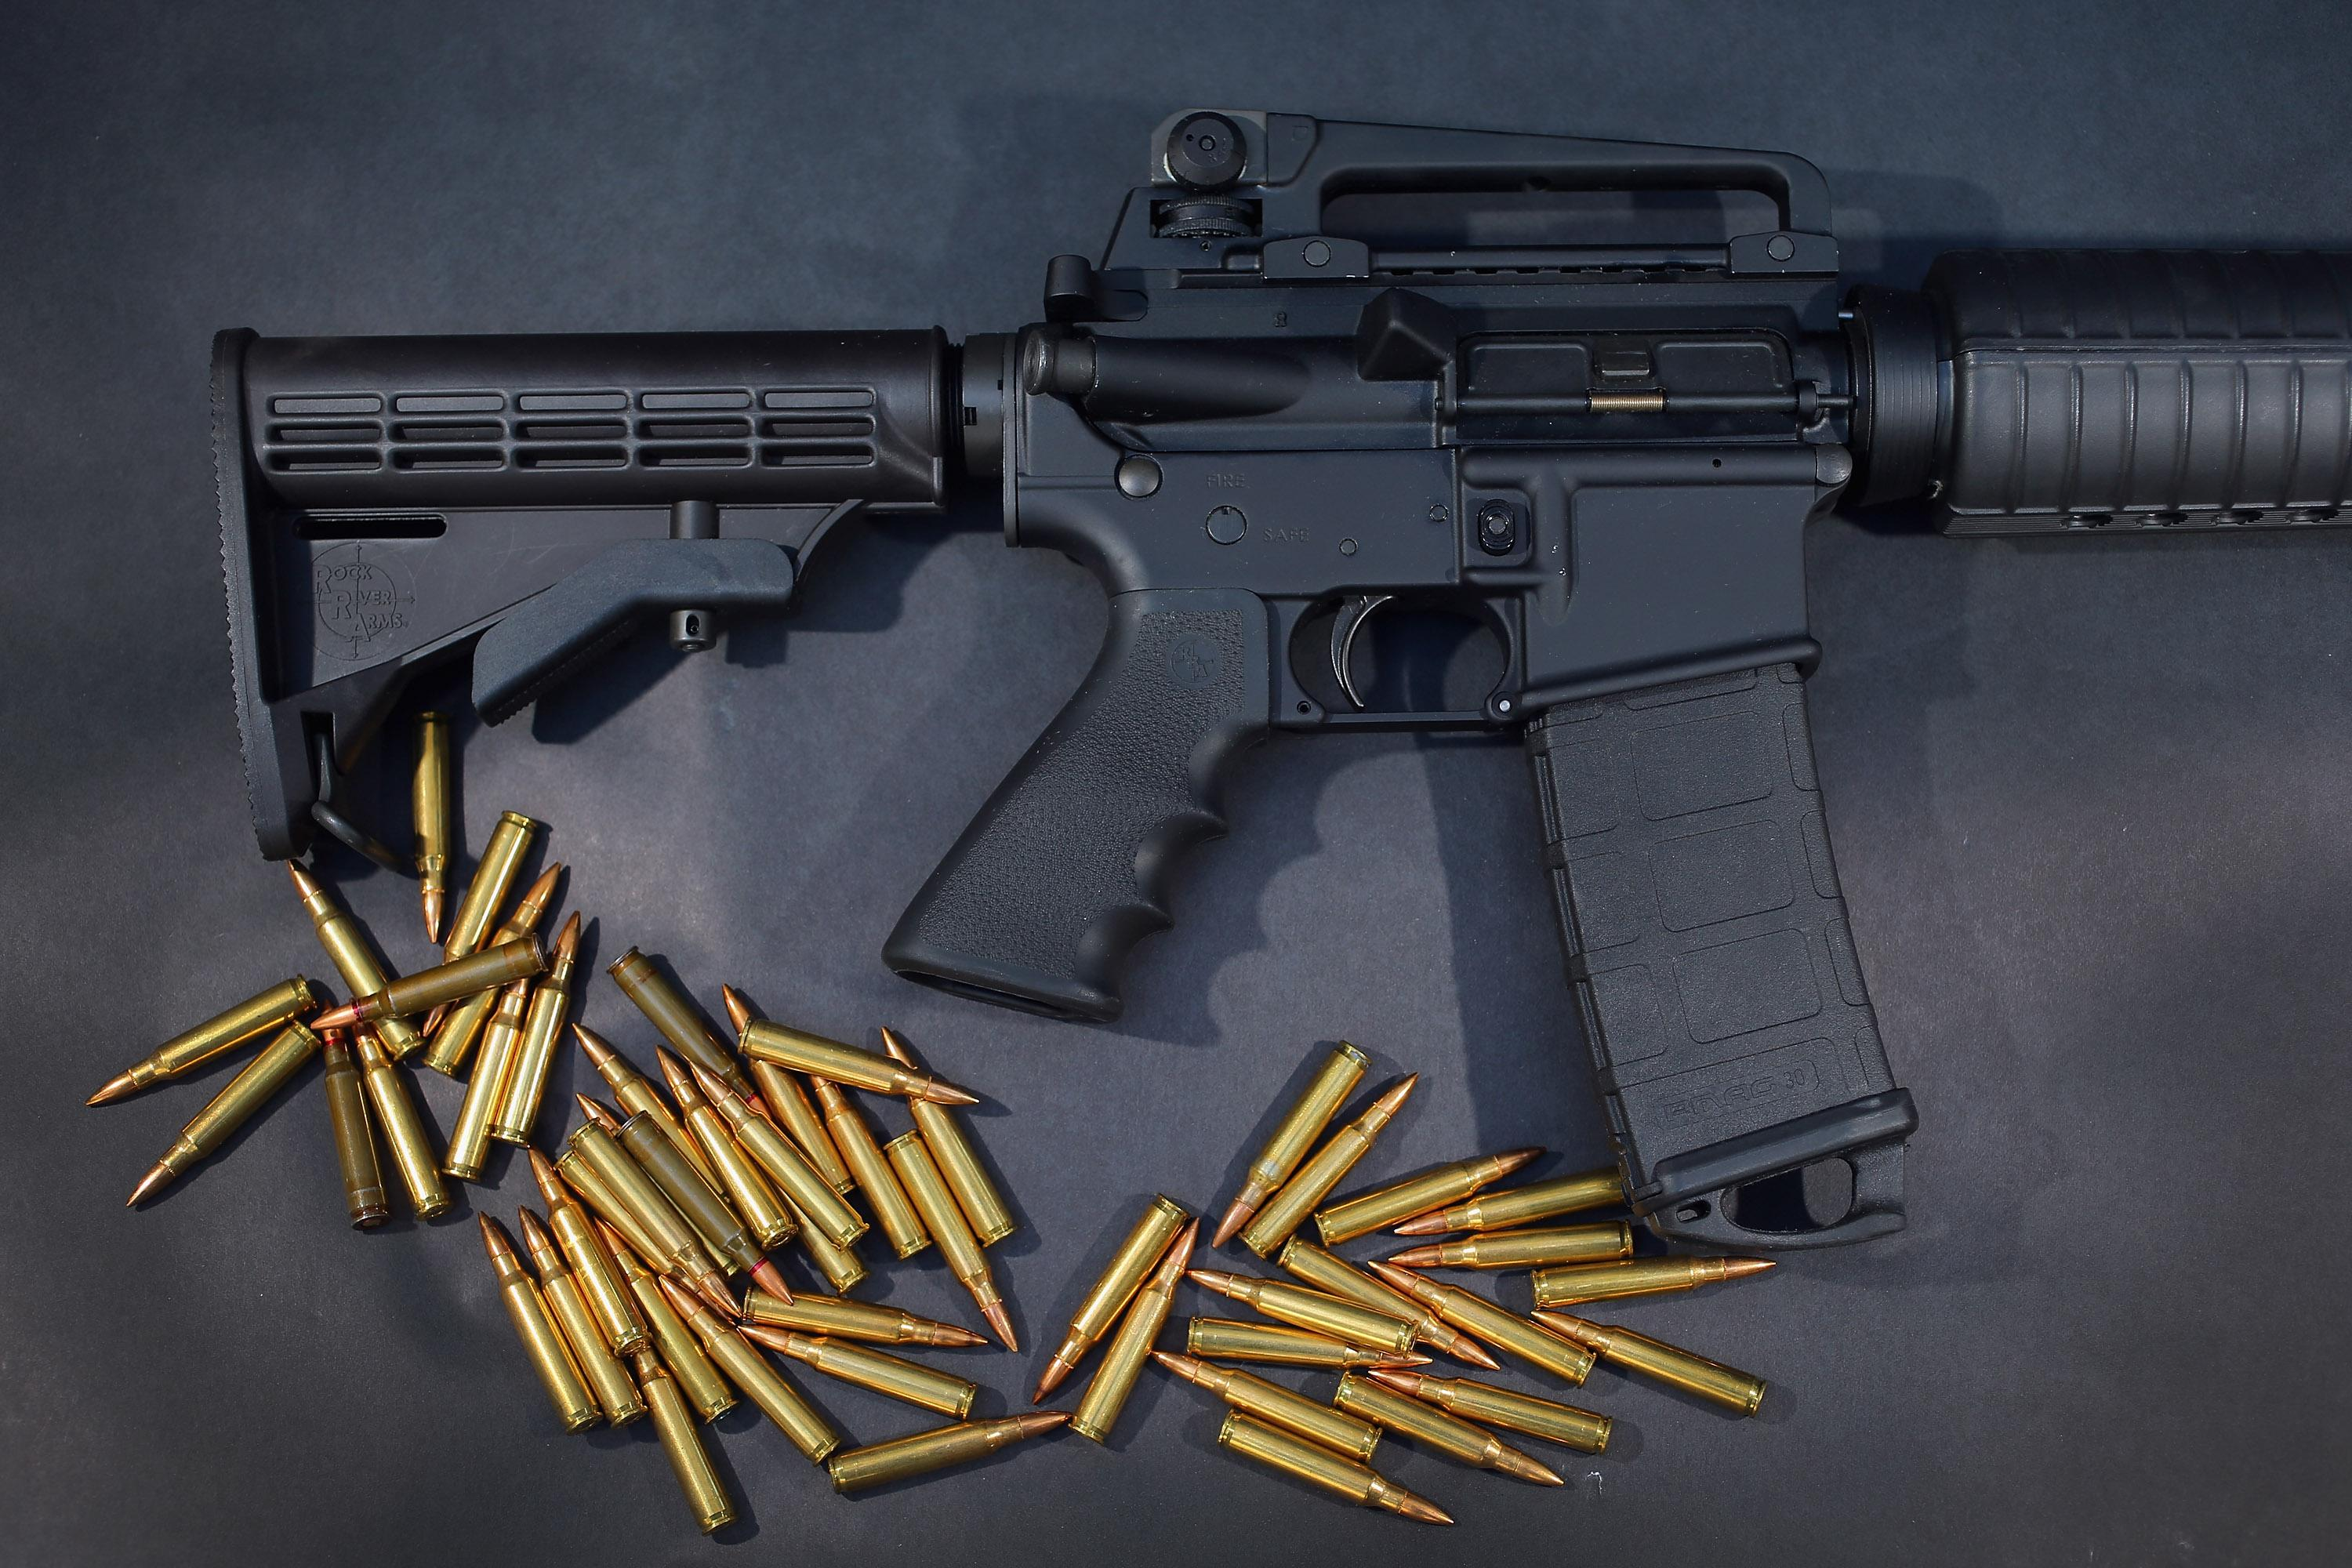 an AR-15 rifle with ammunition on black background